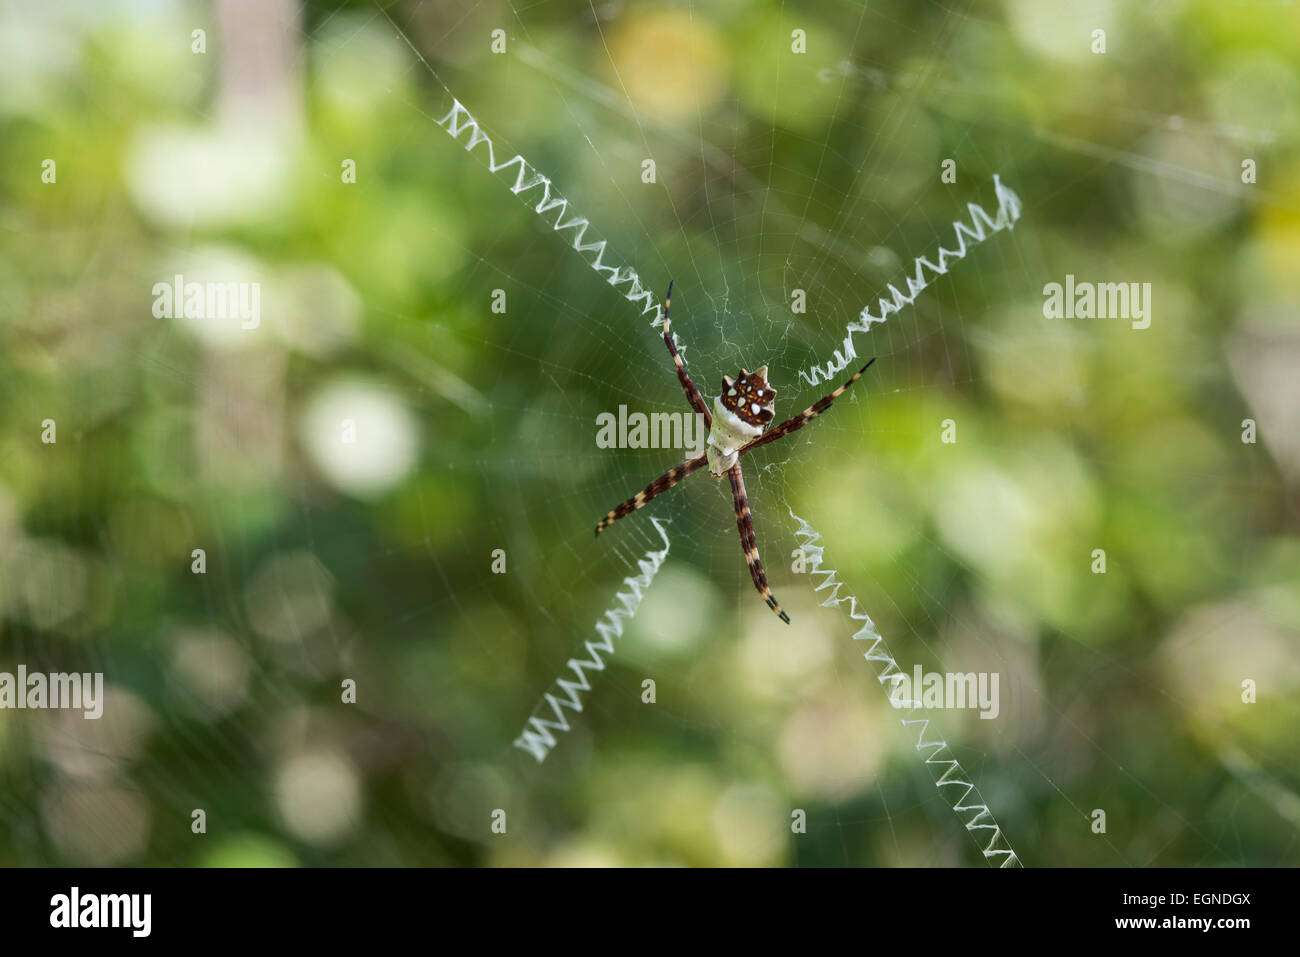 A silver argiope spider in it's hallmark x-shaped, zippered web. - Stock Image